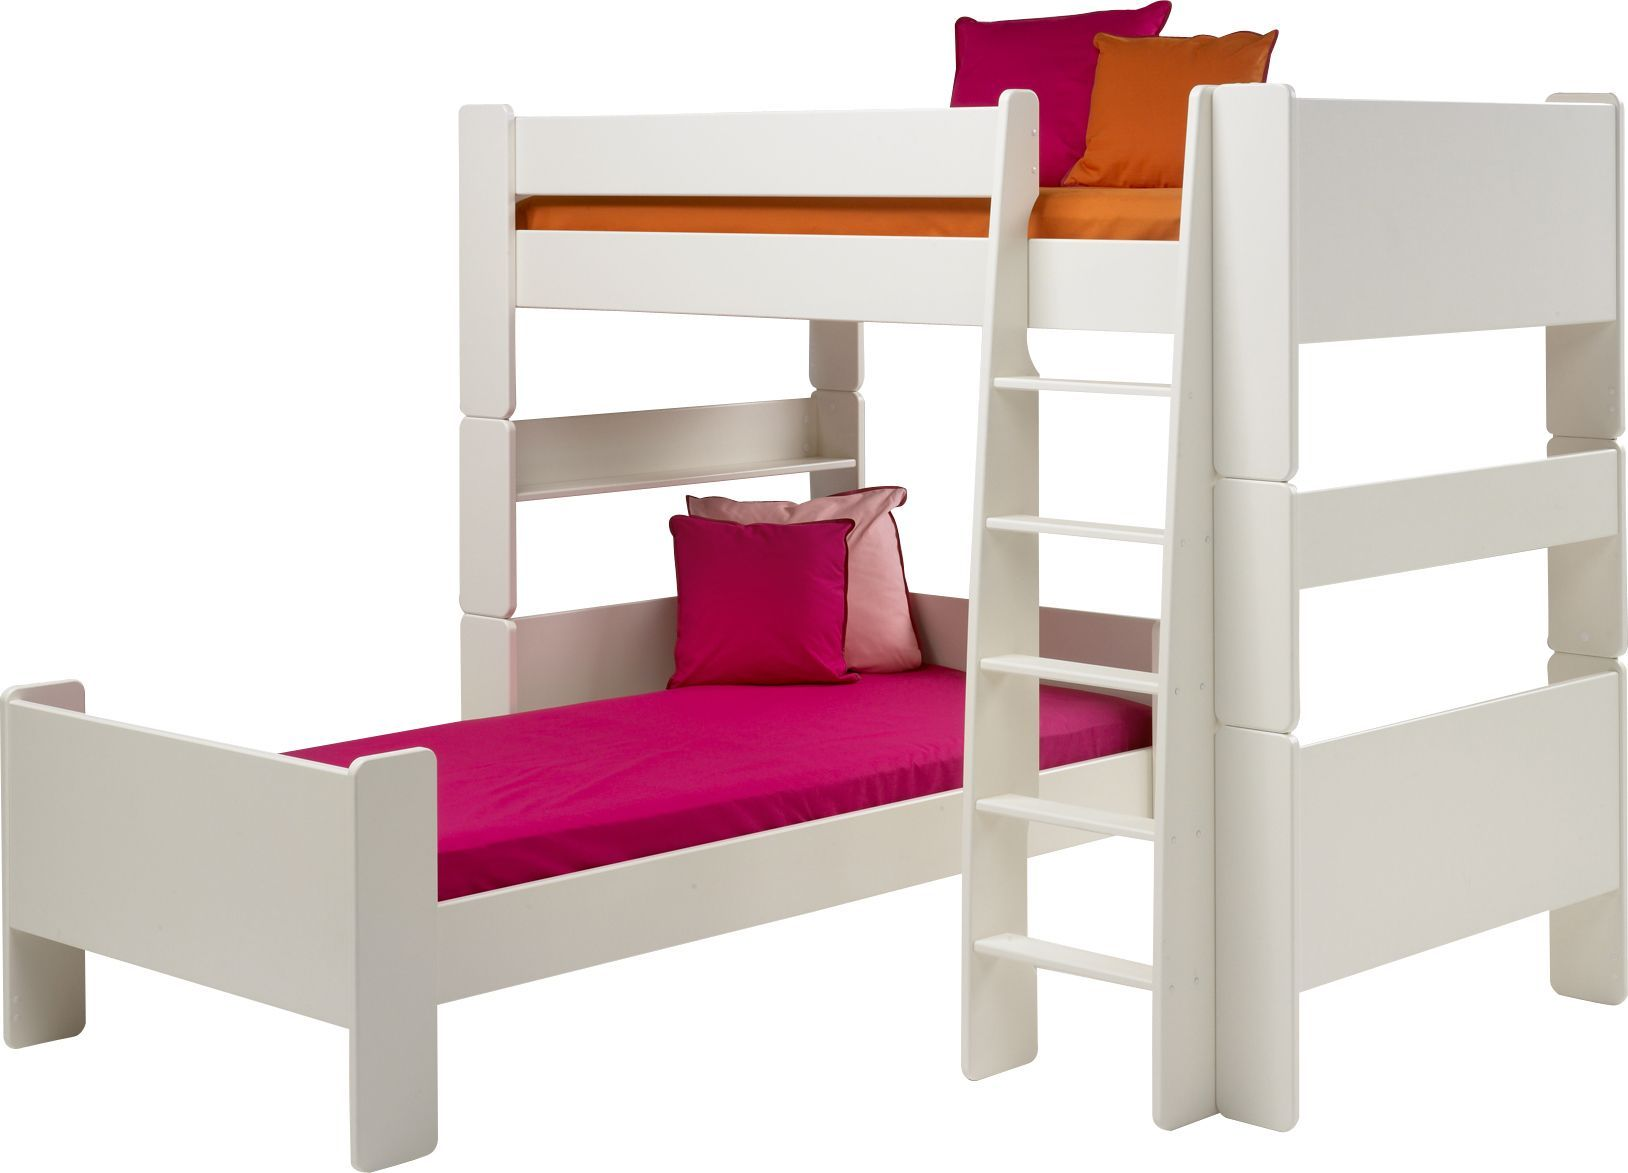 Corner twin loft bed   Interesting L Shaped Bunk Beds Design Ideas Youull Love  Pine